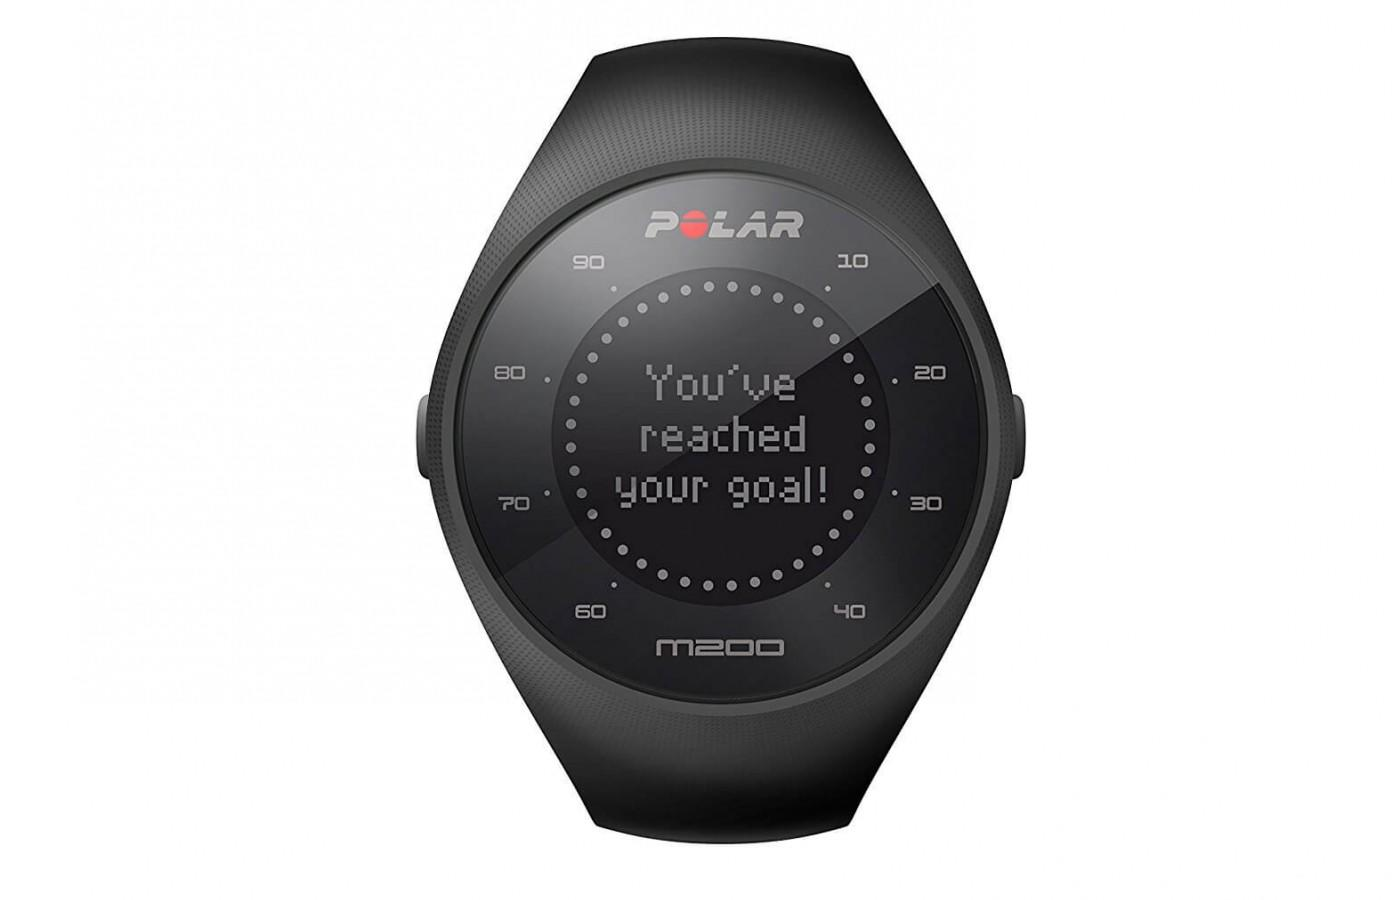 The Polar M200 is easy to use